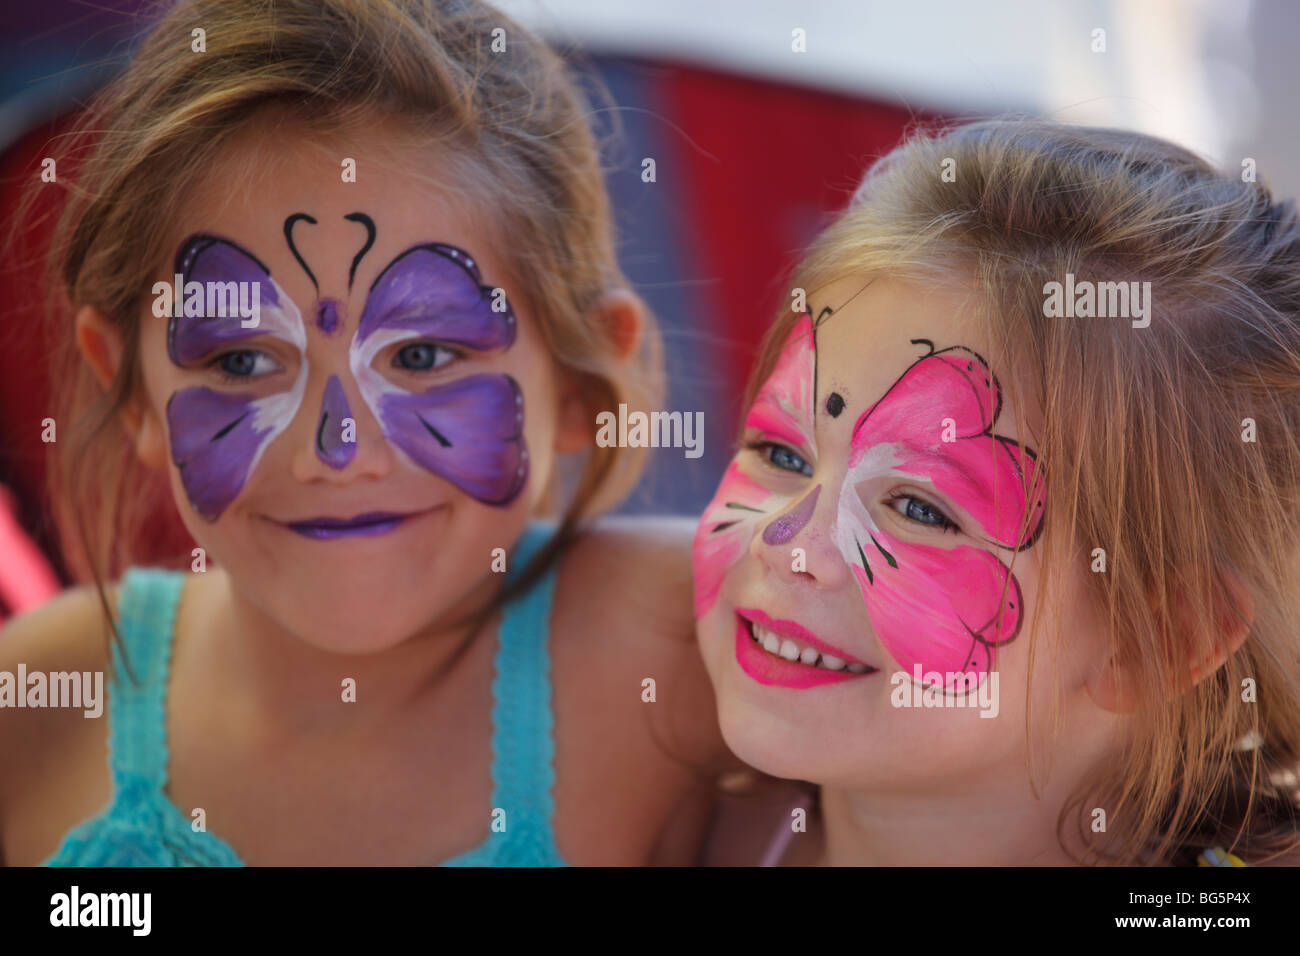 Two young girls with painted faces - Stock Image